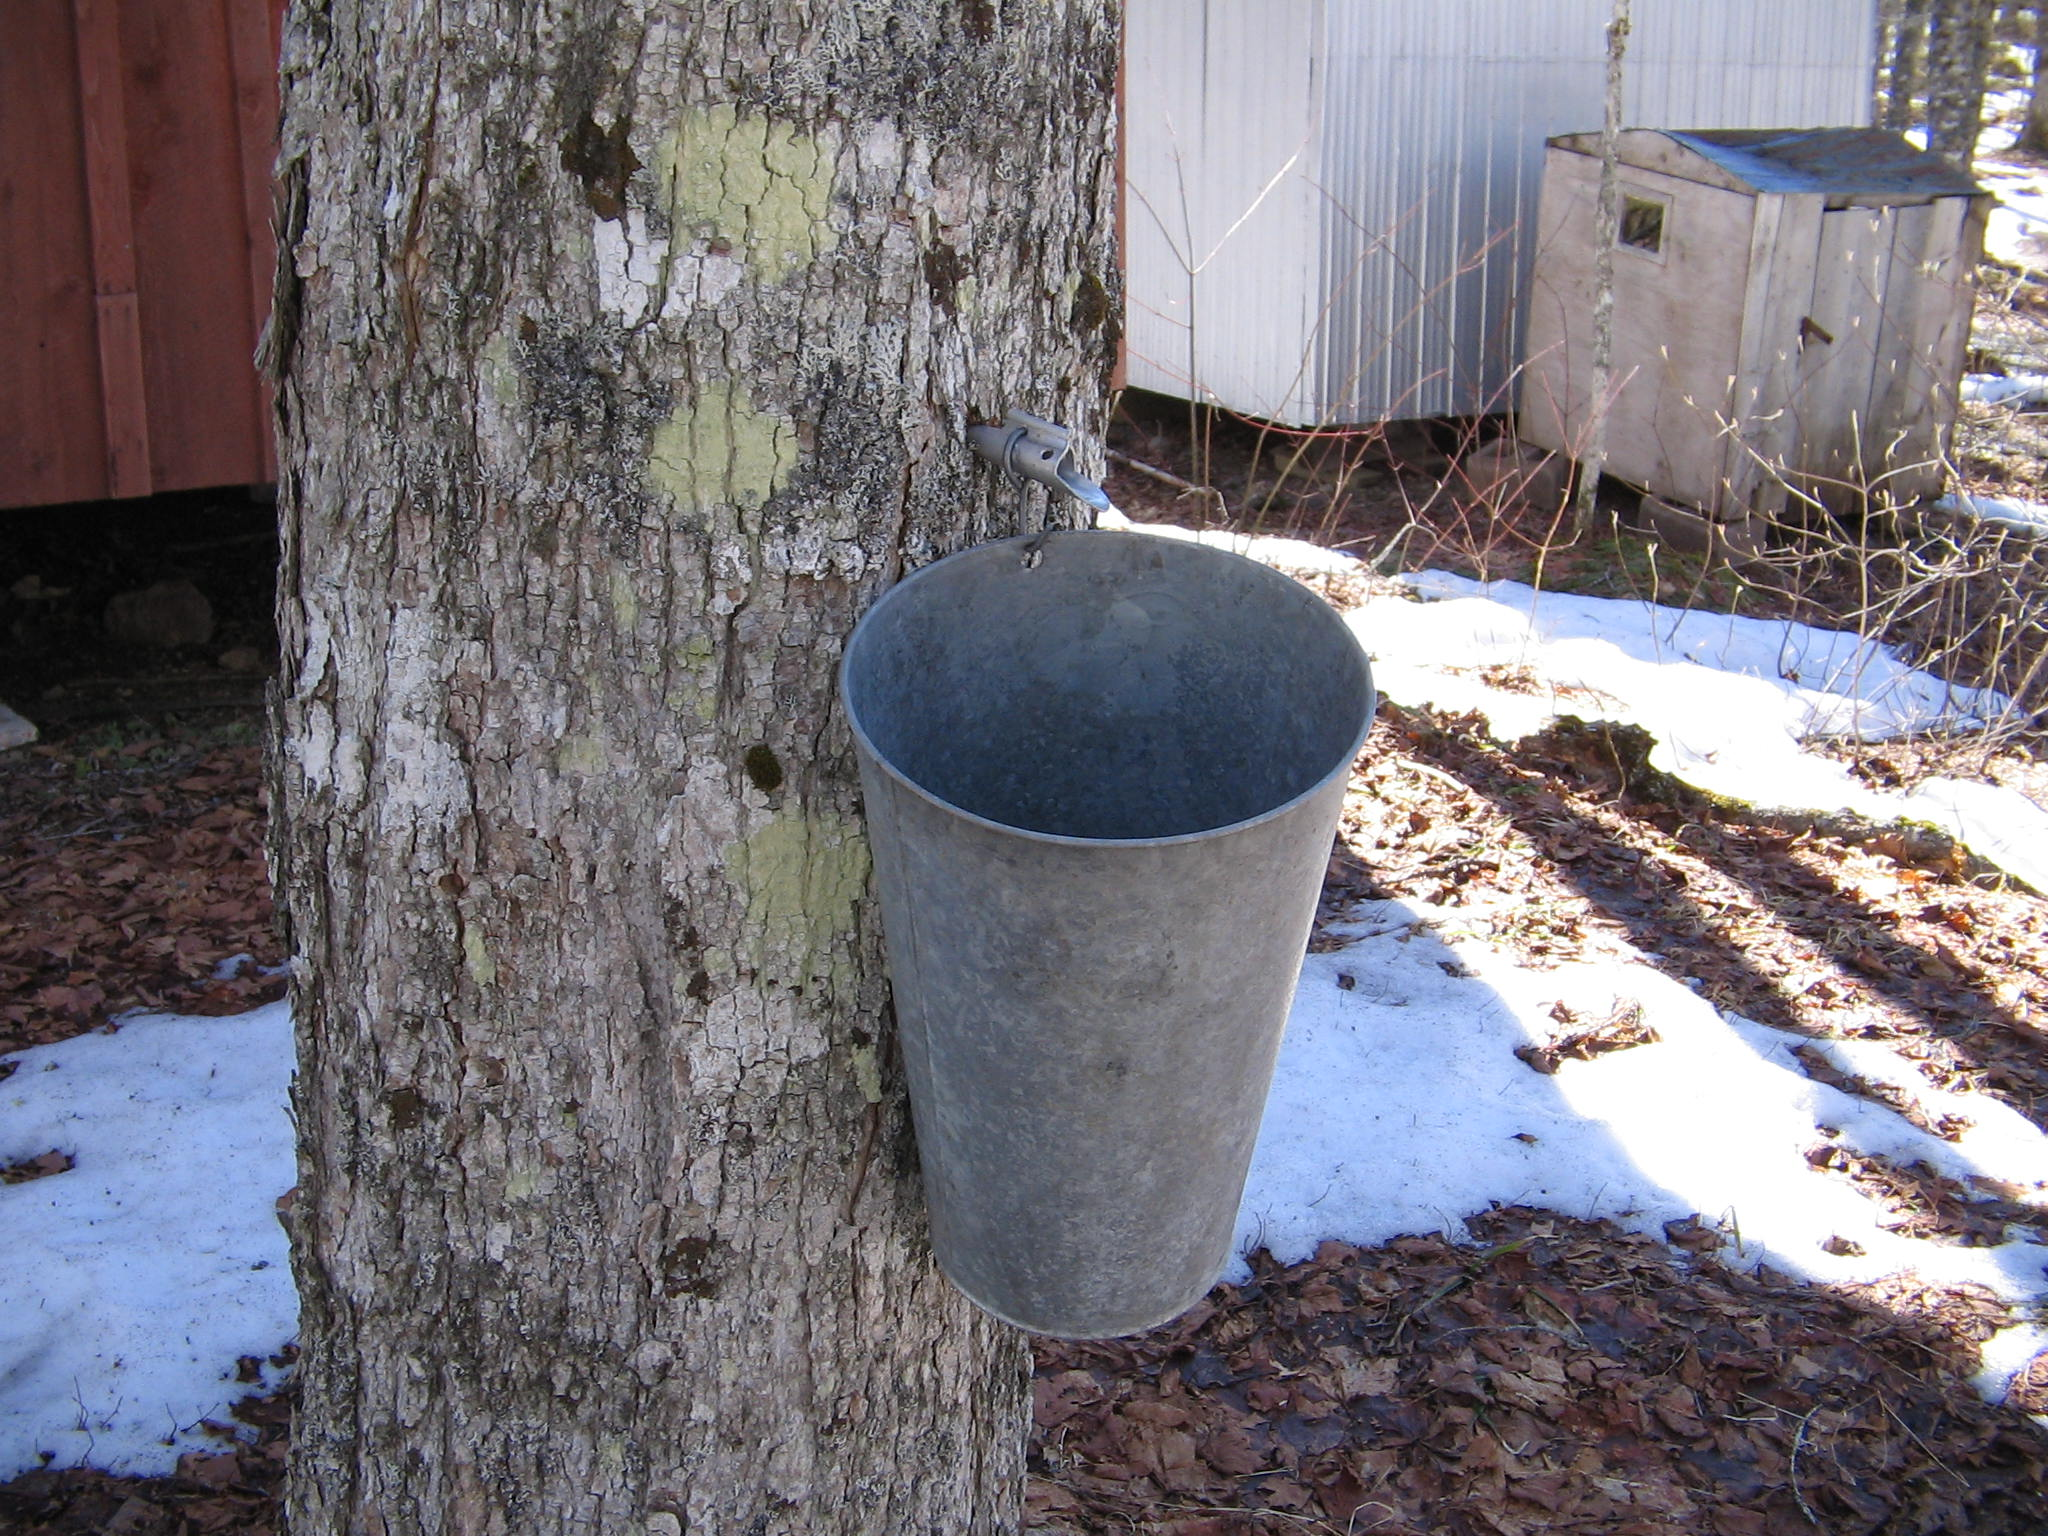 File:Maple syrup bucket.jpg  Wikimedia Commons